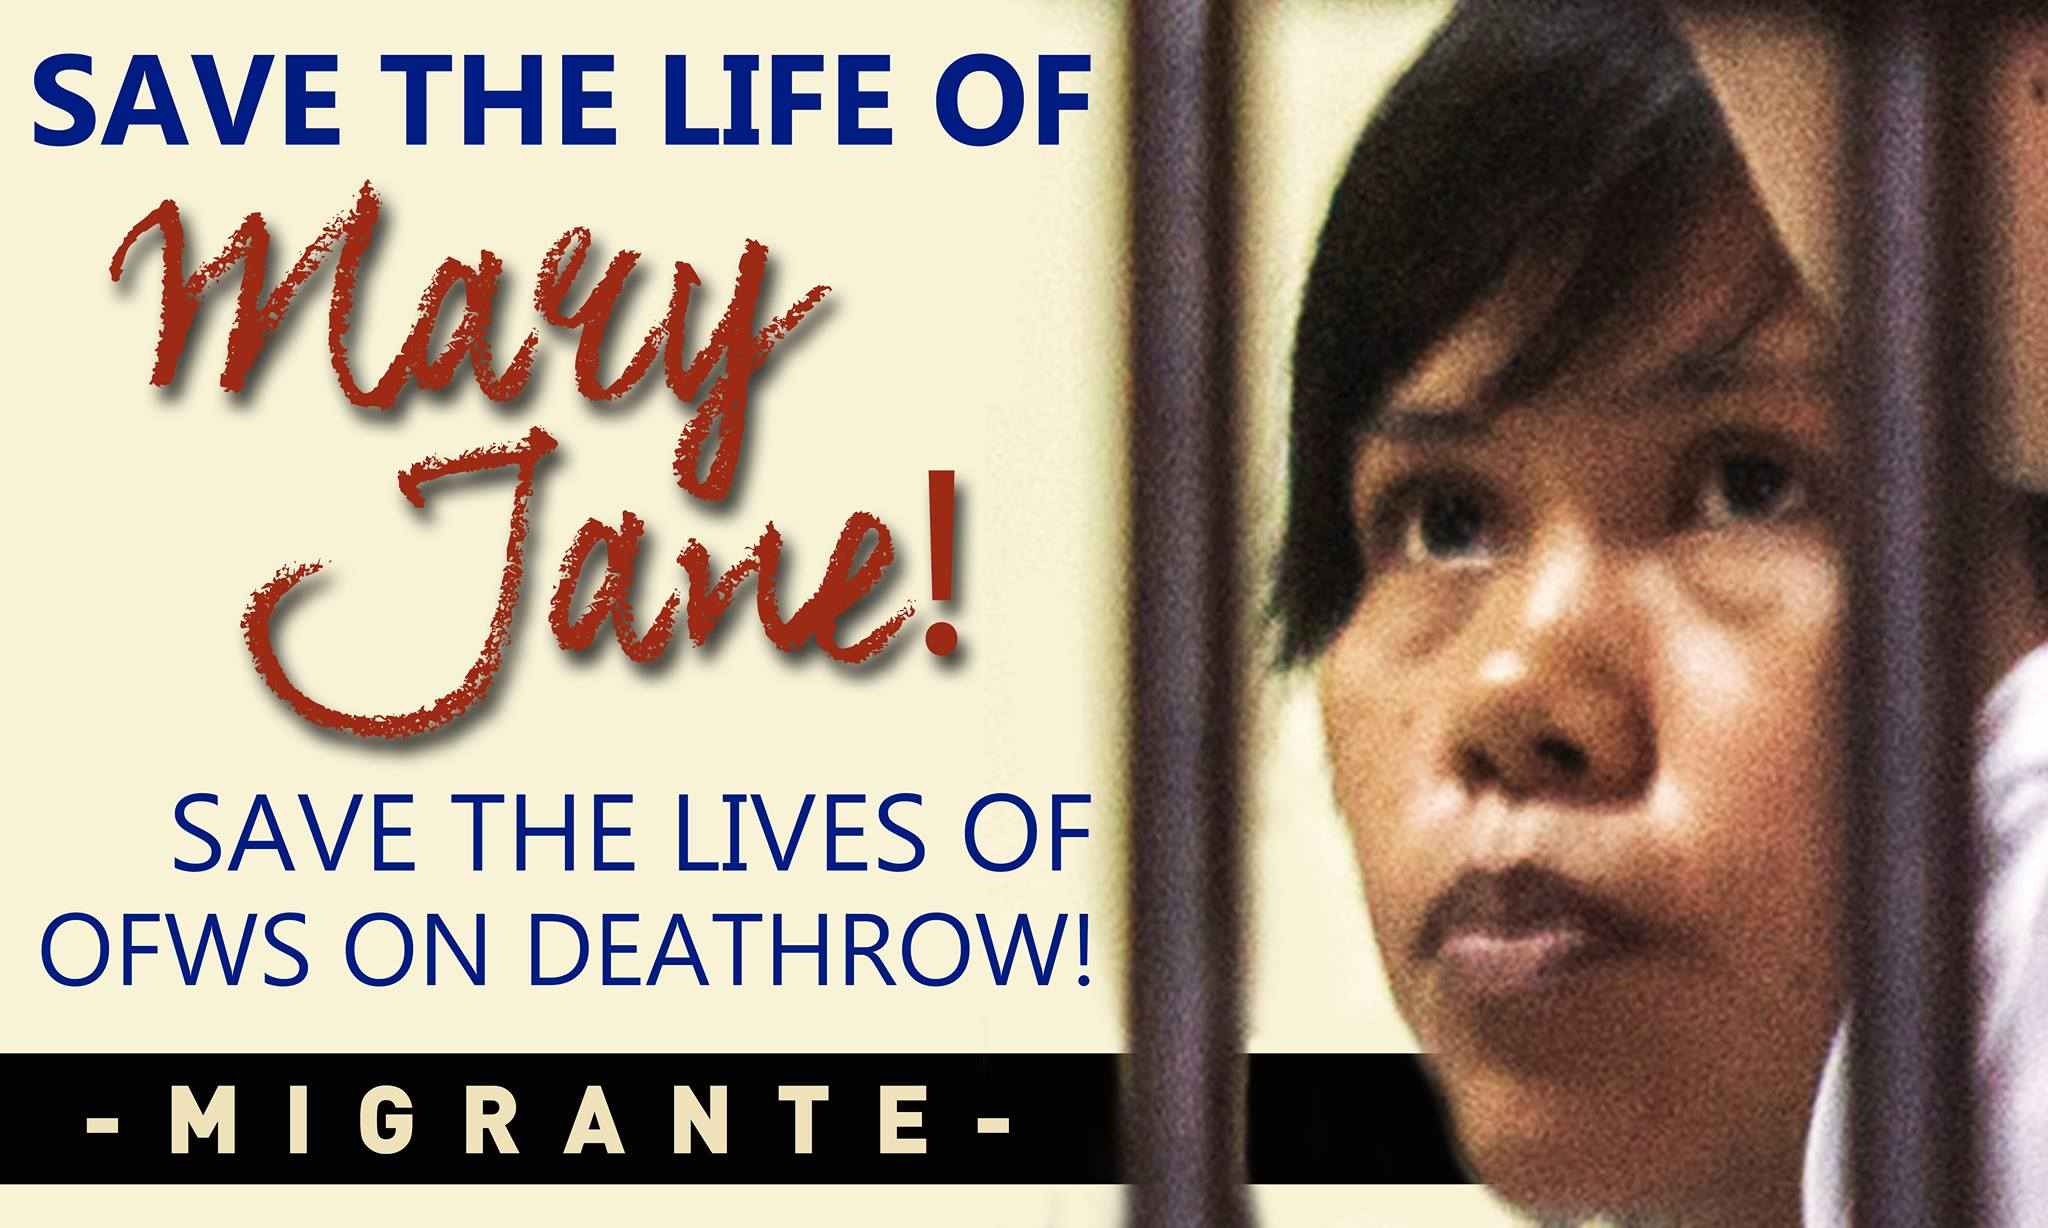 Appeal for urgent action save the life of Filipina Mary Jane.